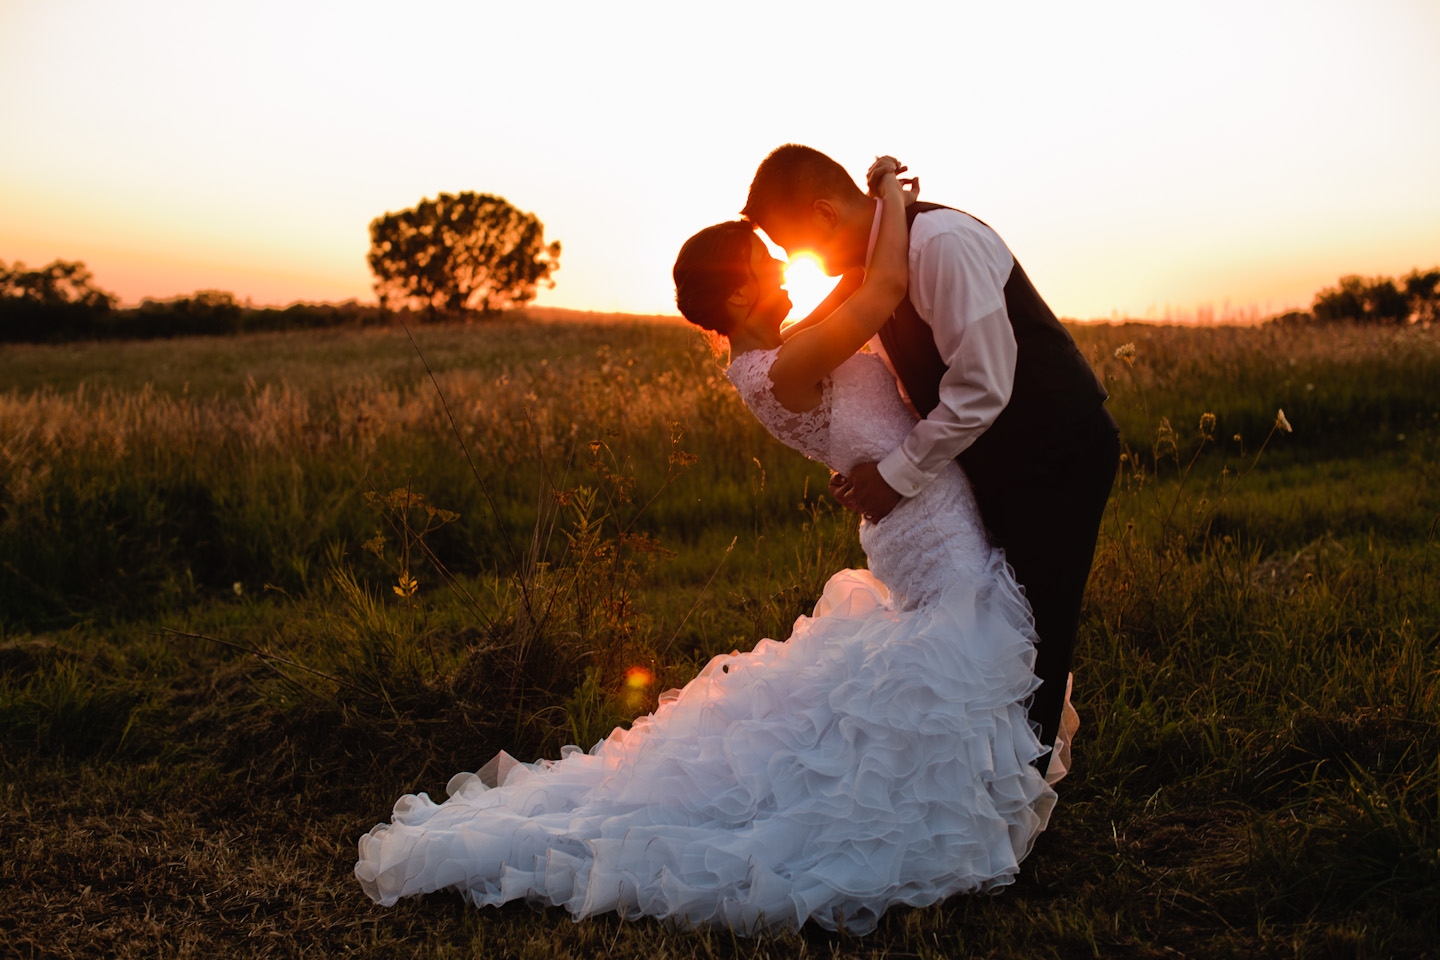 couple kissing with sunflare des moines iowa field